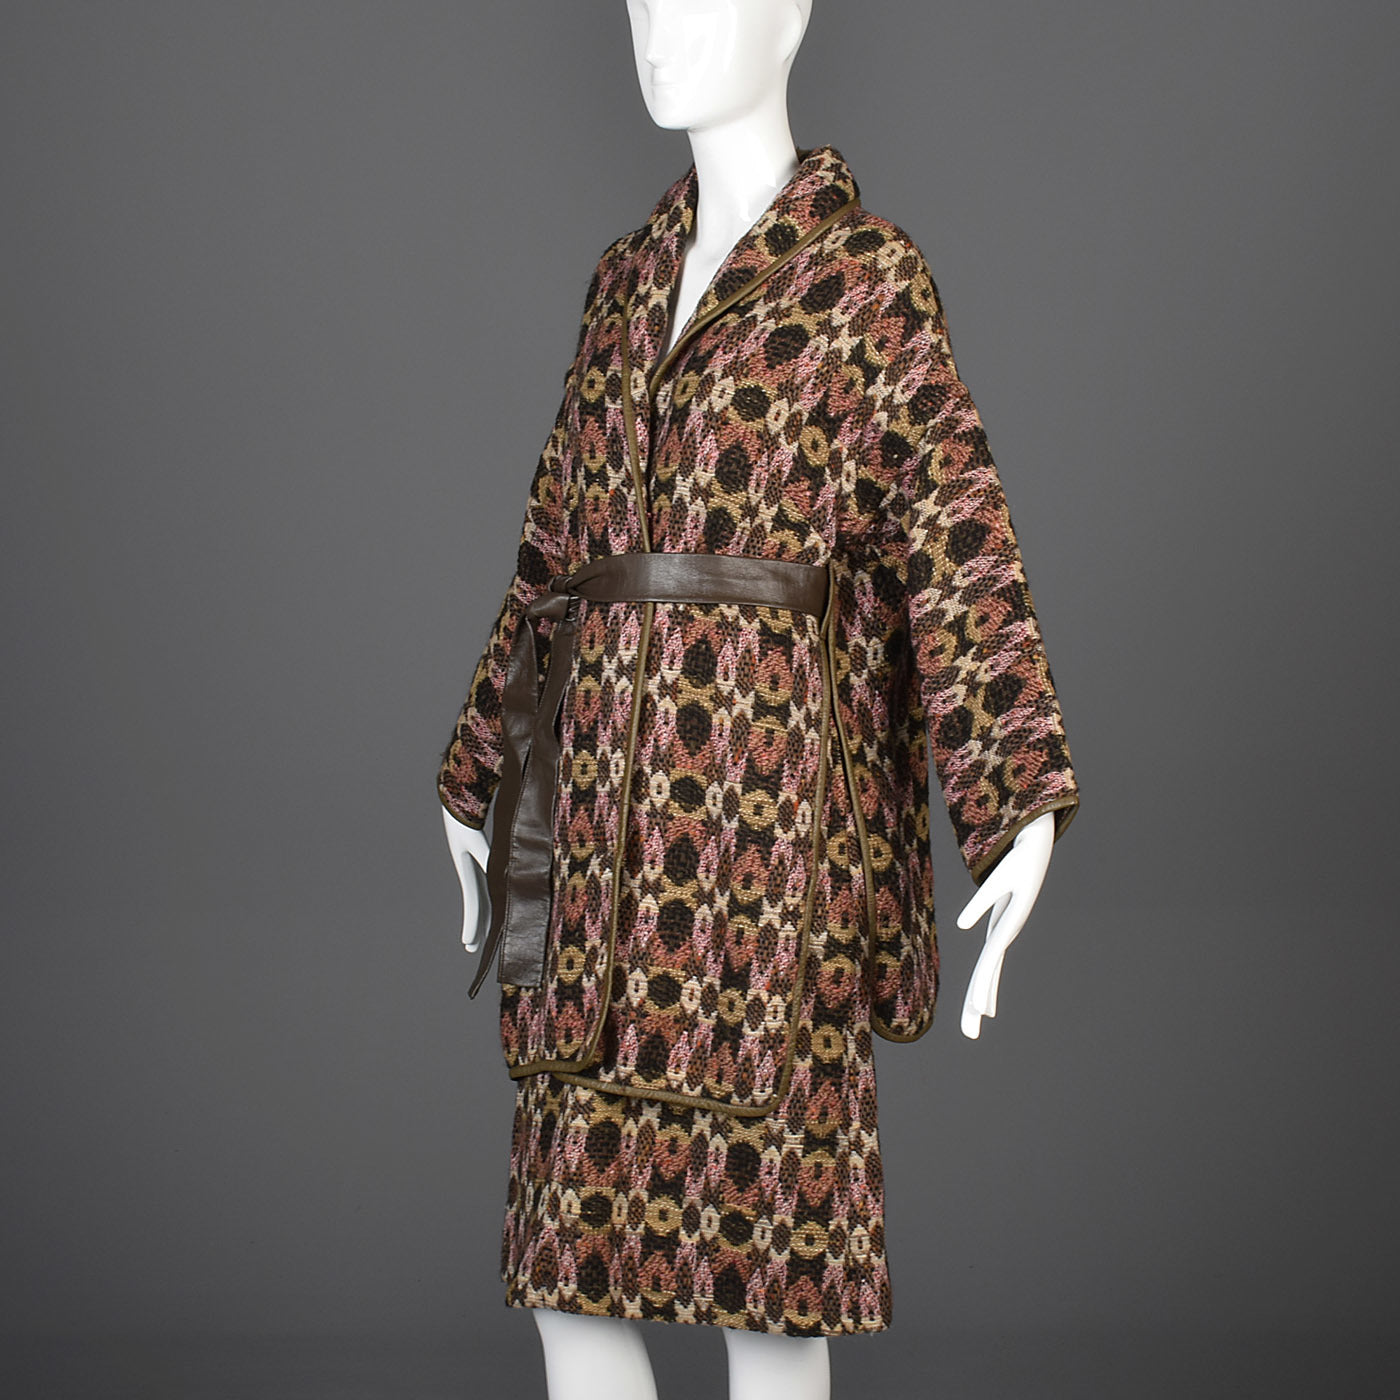 Late 1960s Bonnie Cashin Sills Bohemian Tweed Separates with Leather Trim